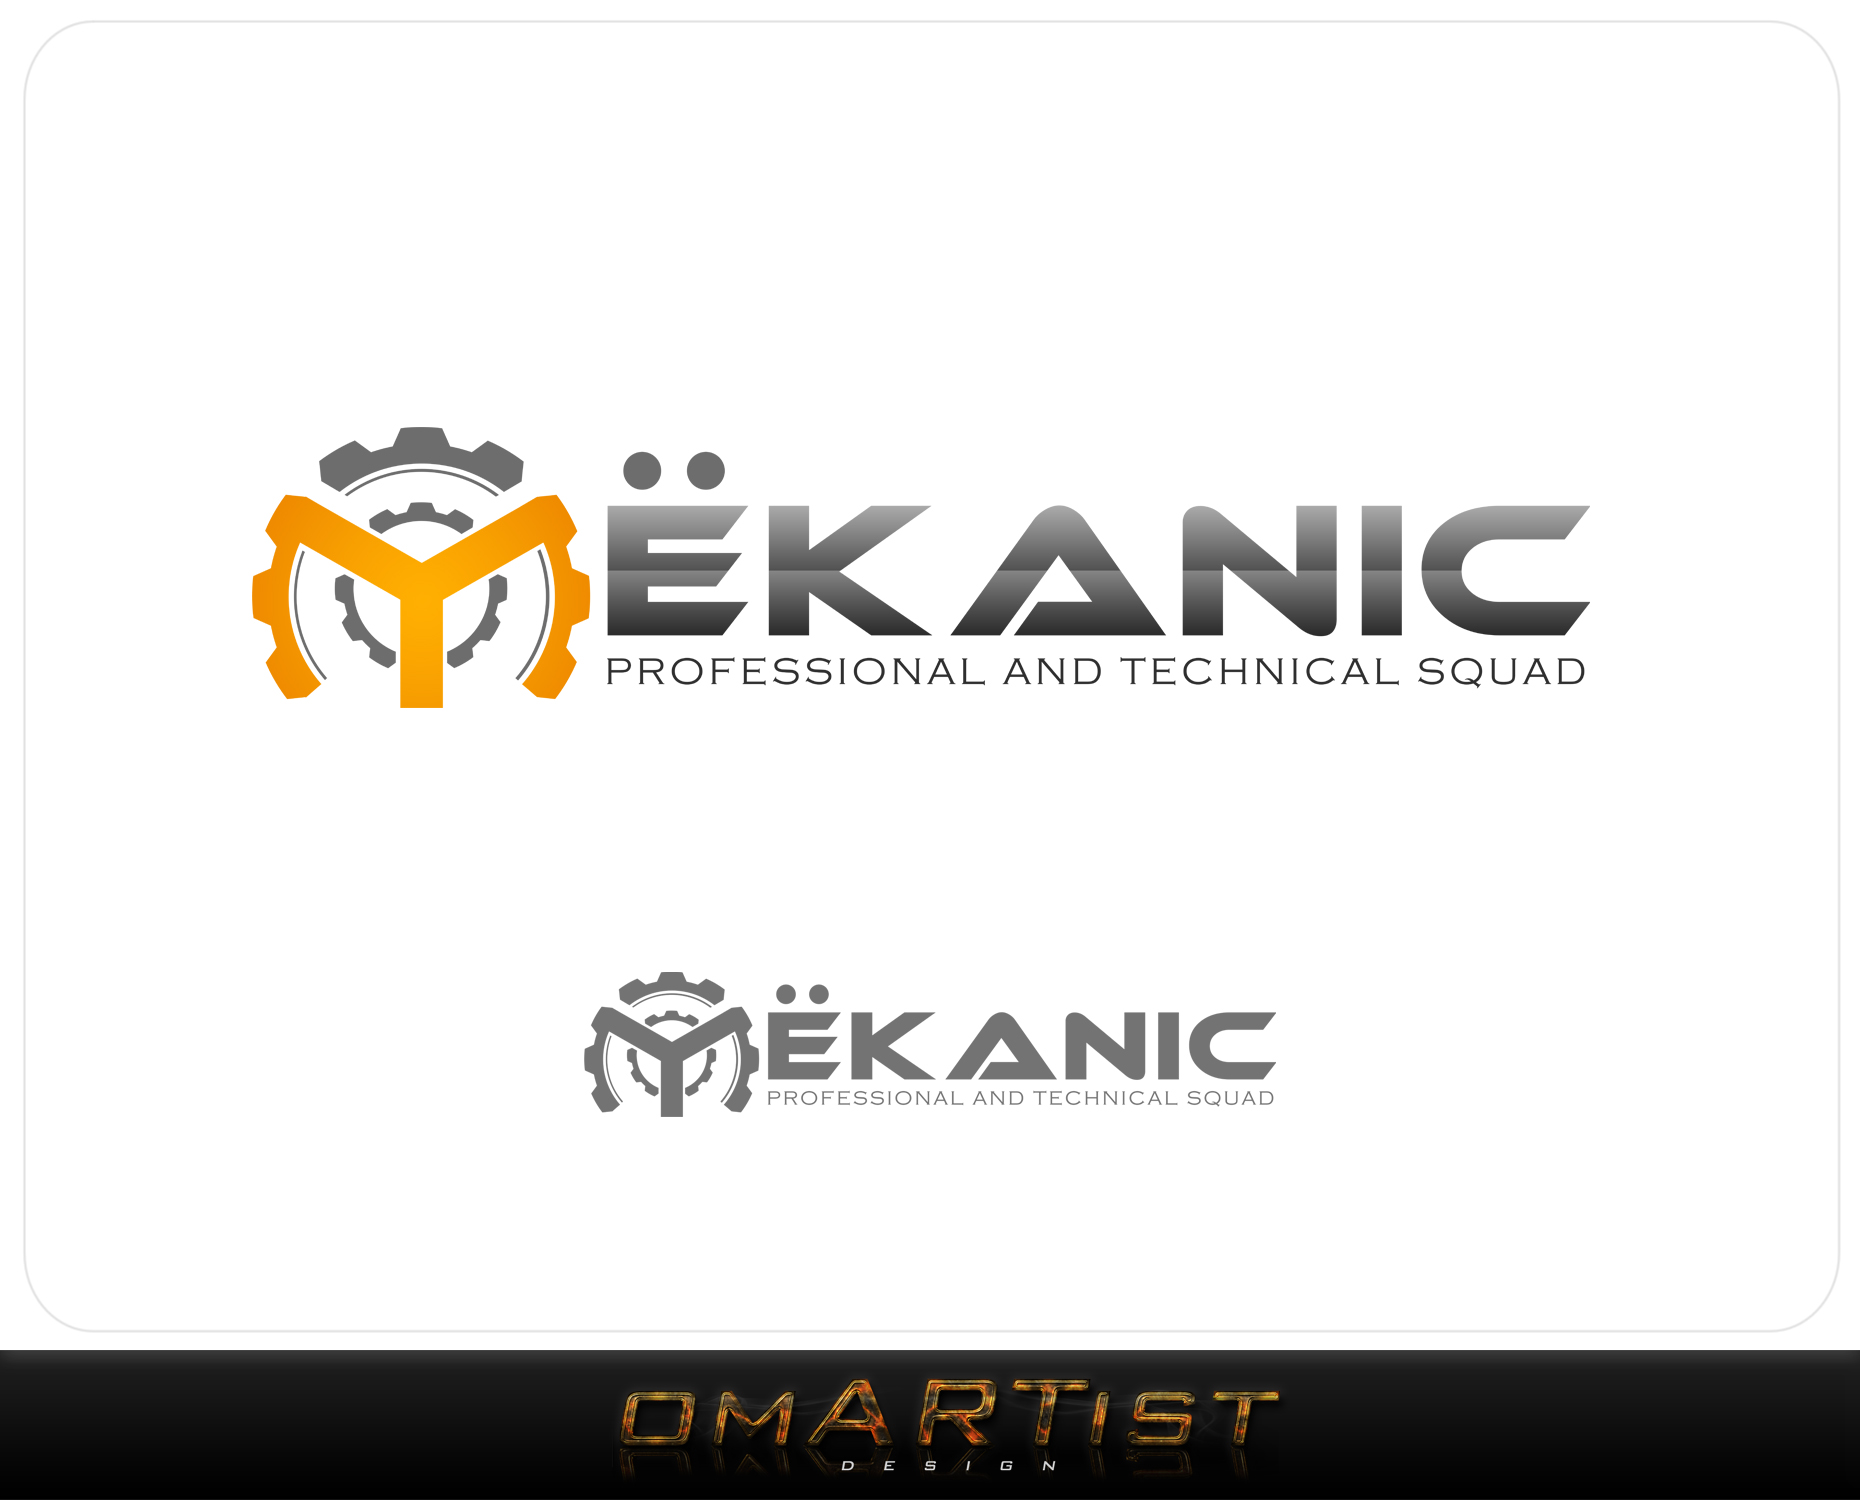 Logo Design by omARTist - Entry No. 354 in the Logo Design Contest Creative Logo Design for MËKANIC - Professional and technical squad.